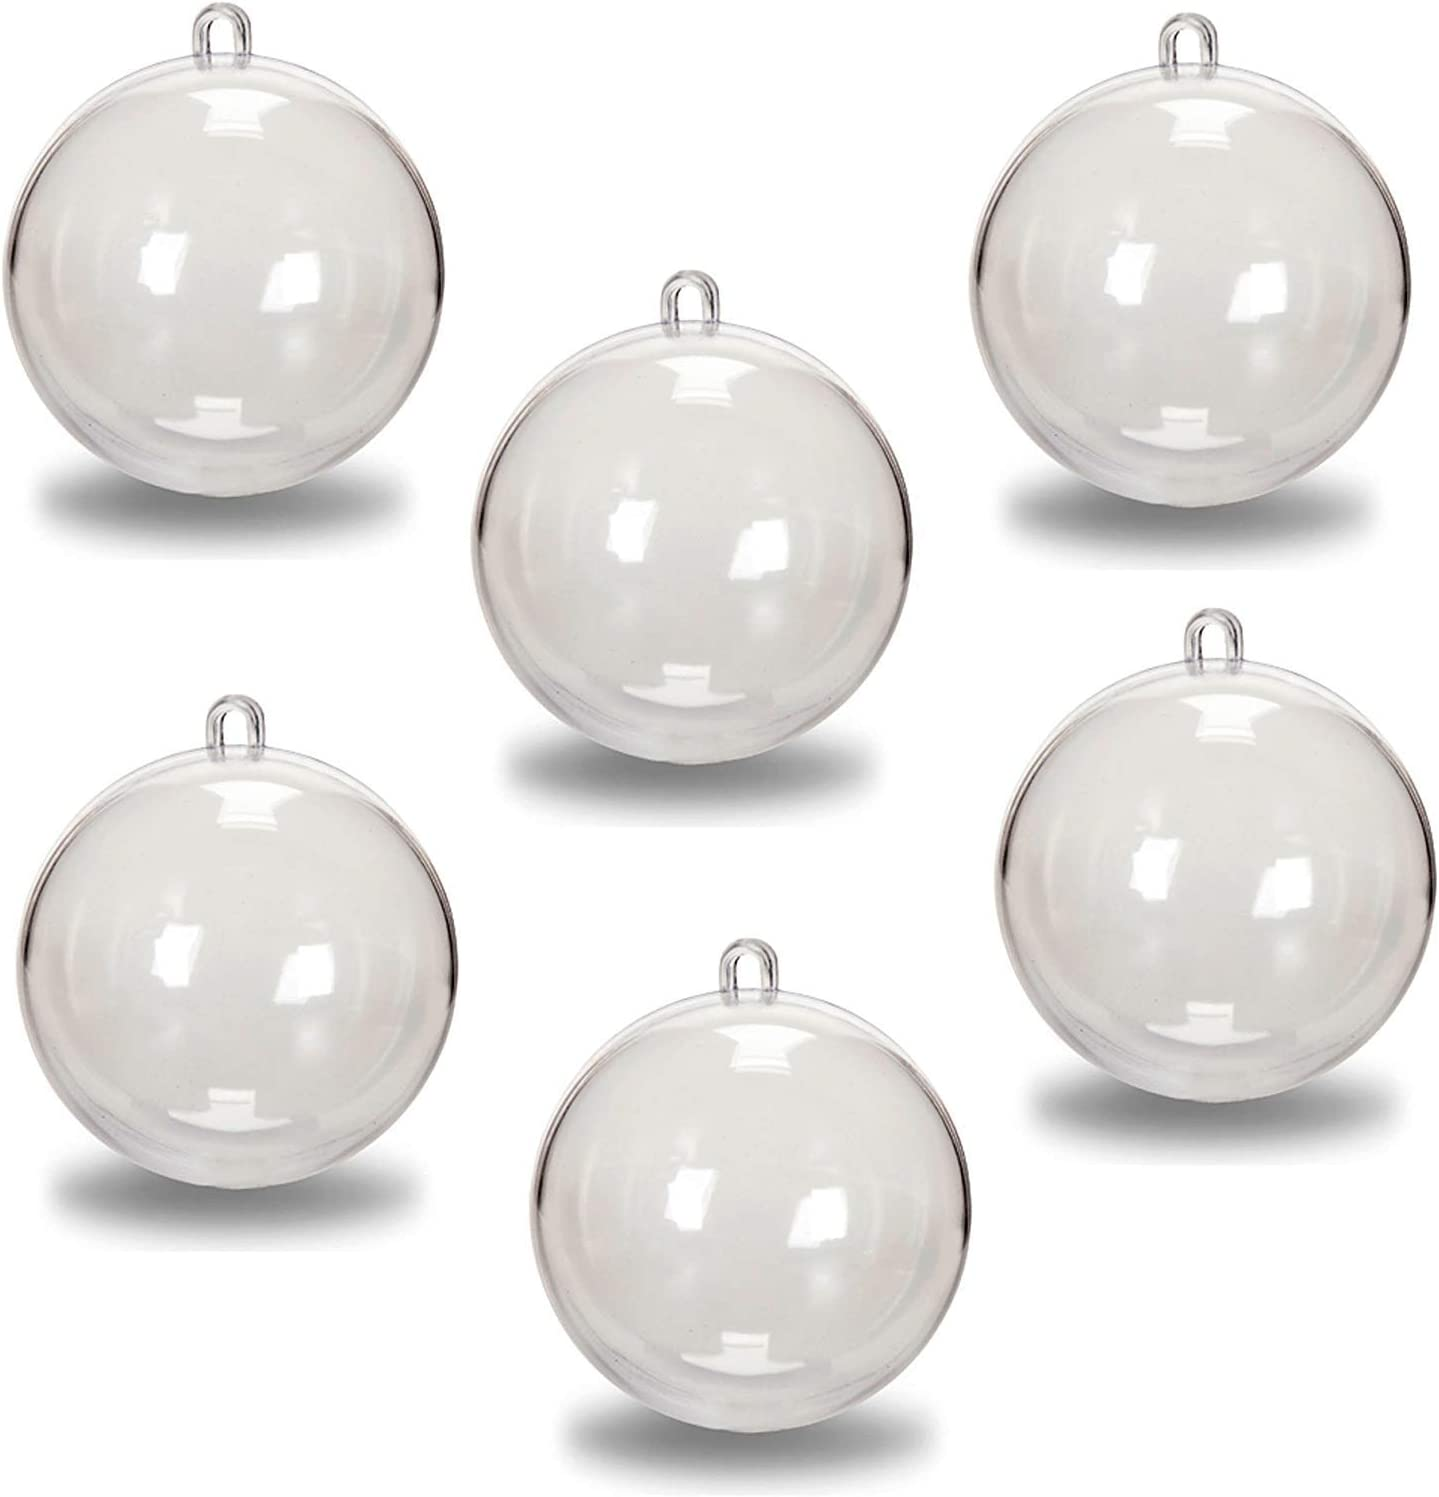 Santa's Studio Package of 12-80mm Clear Acrylic Fillable Christmas Tree Ornaments